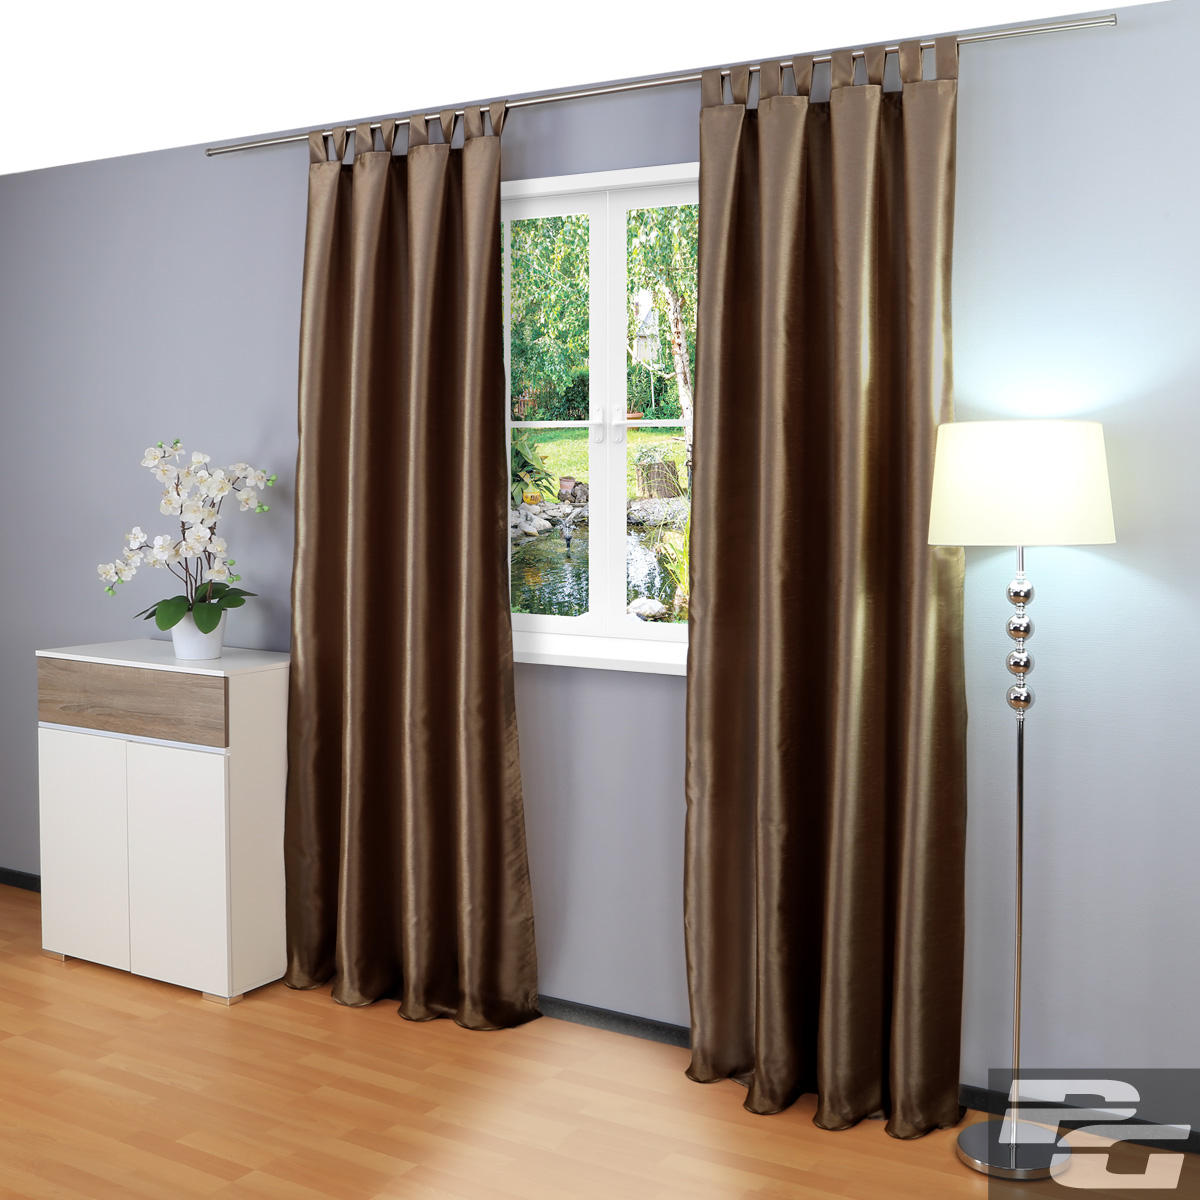 rollos f r doppelfenster braun beige raum und m beldesign inspiration. Black Bedroom Furniture Sets. Home Design Ideas